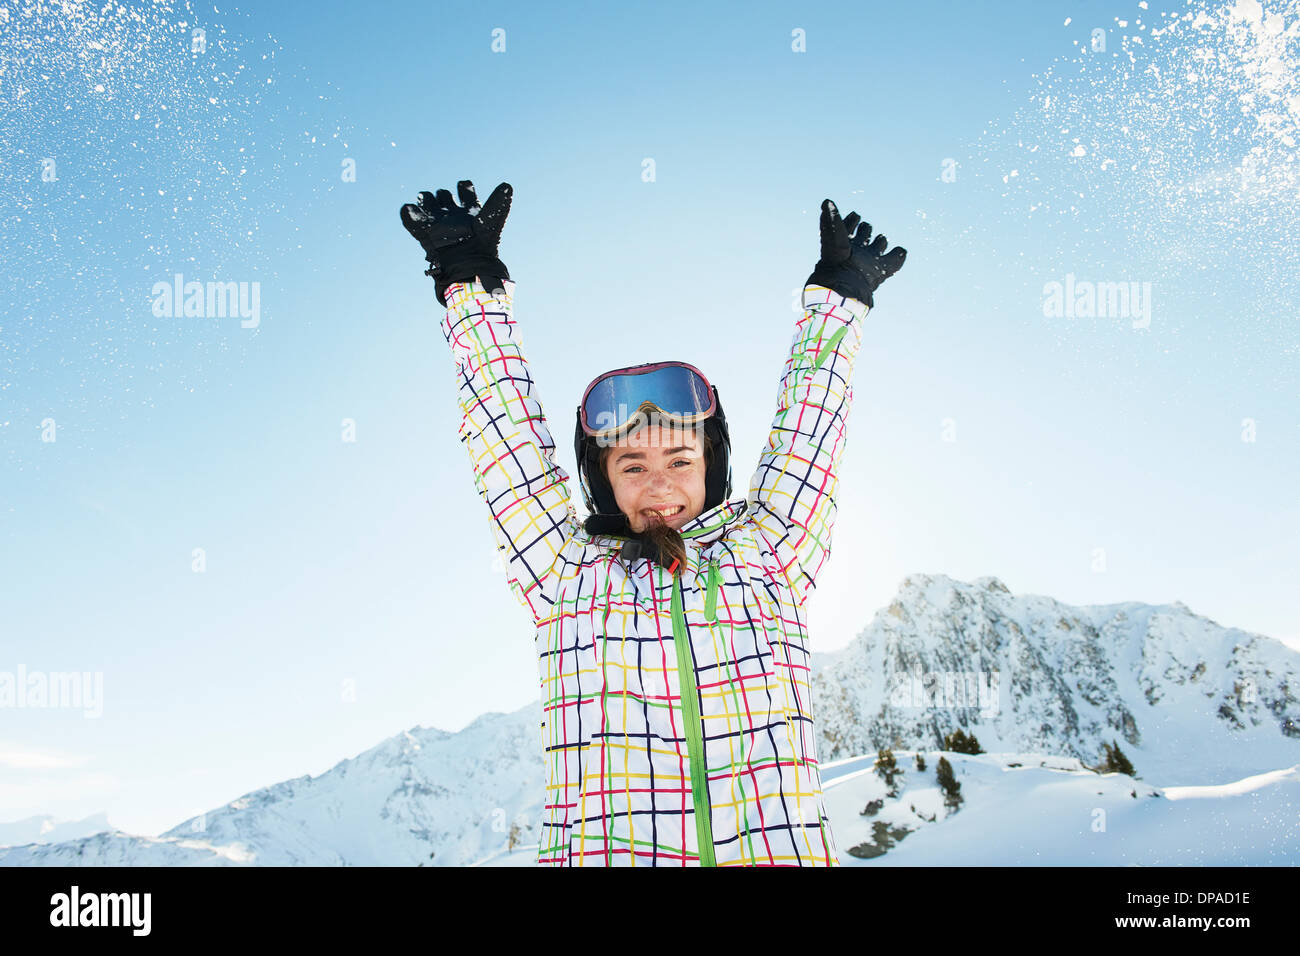 Portrait of teenage girl skier with arms raised, Les Arcs, Haute-Savoie, France - Stock Image